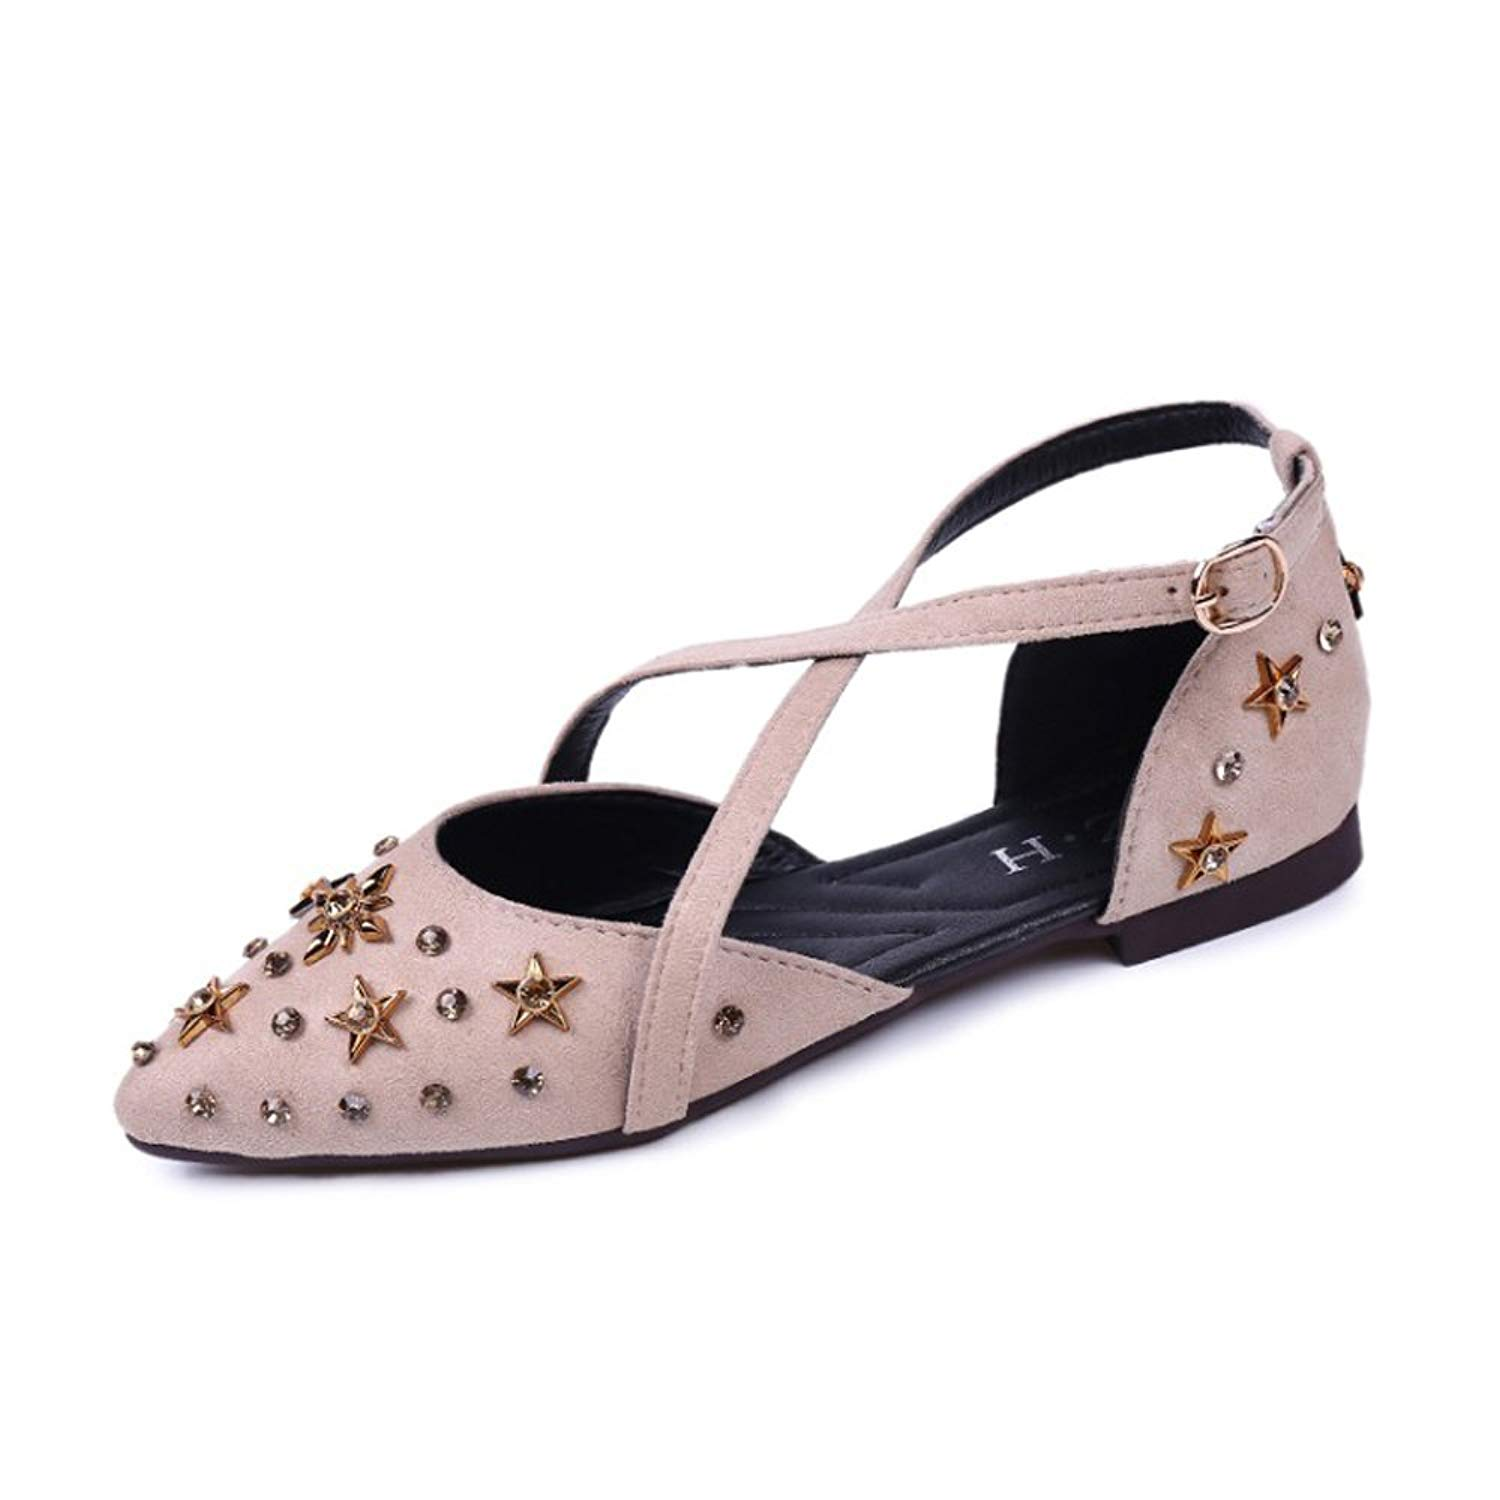 2e9b506af2b Get Quotations · Rivets Shoes Women Flats Ballet Cross Strap Pointed Toe  Stud Dress Sandals